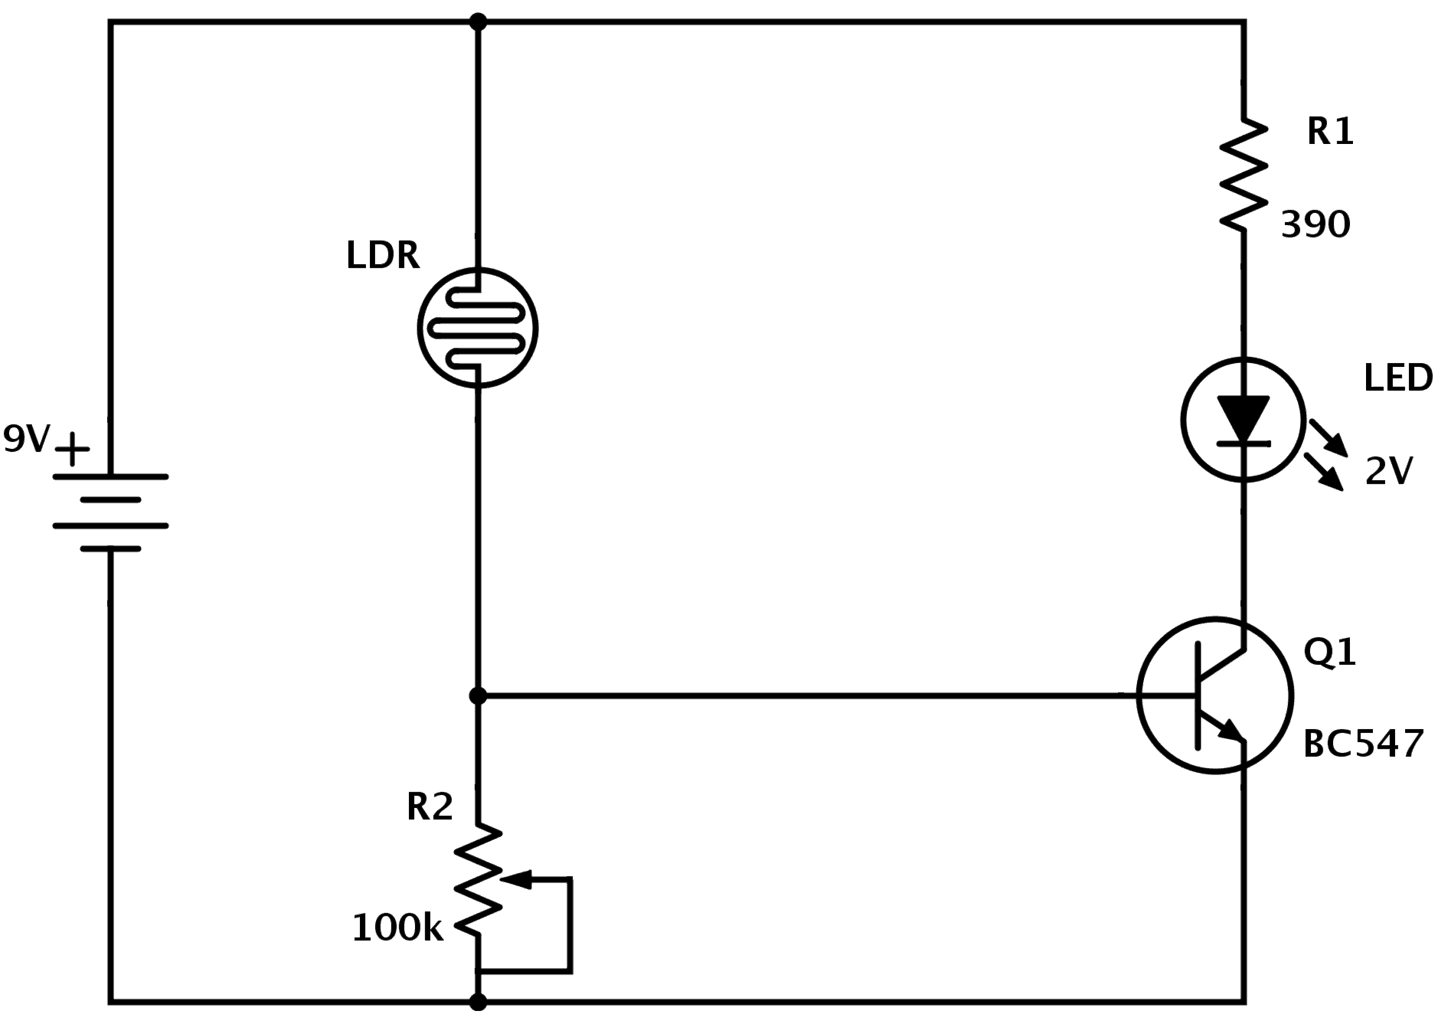 LDR circuit improved ldr circuit diagram build electronic circuits